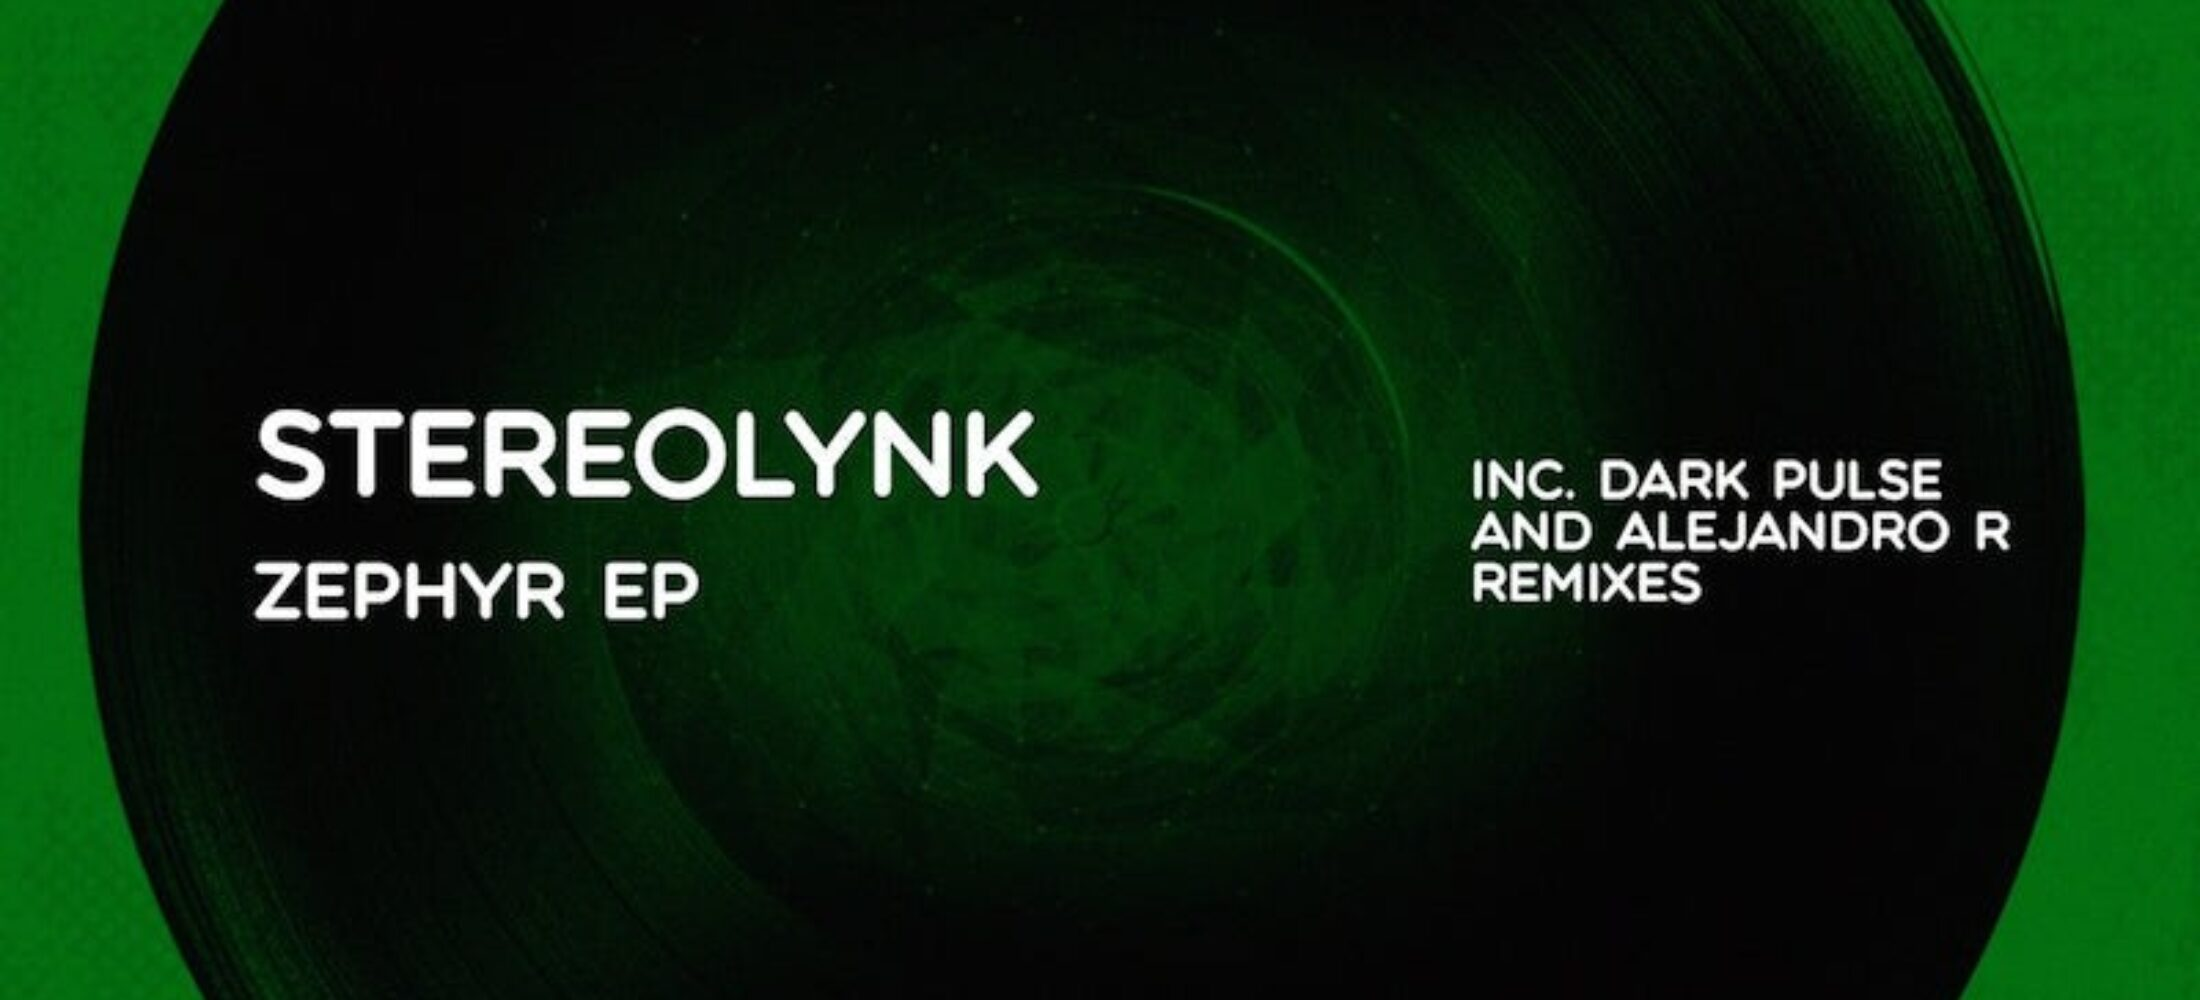 New Release - Stereolynk -Zephyr EP